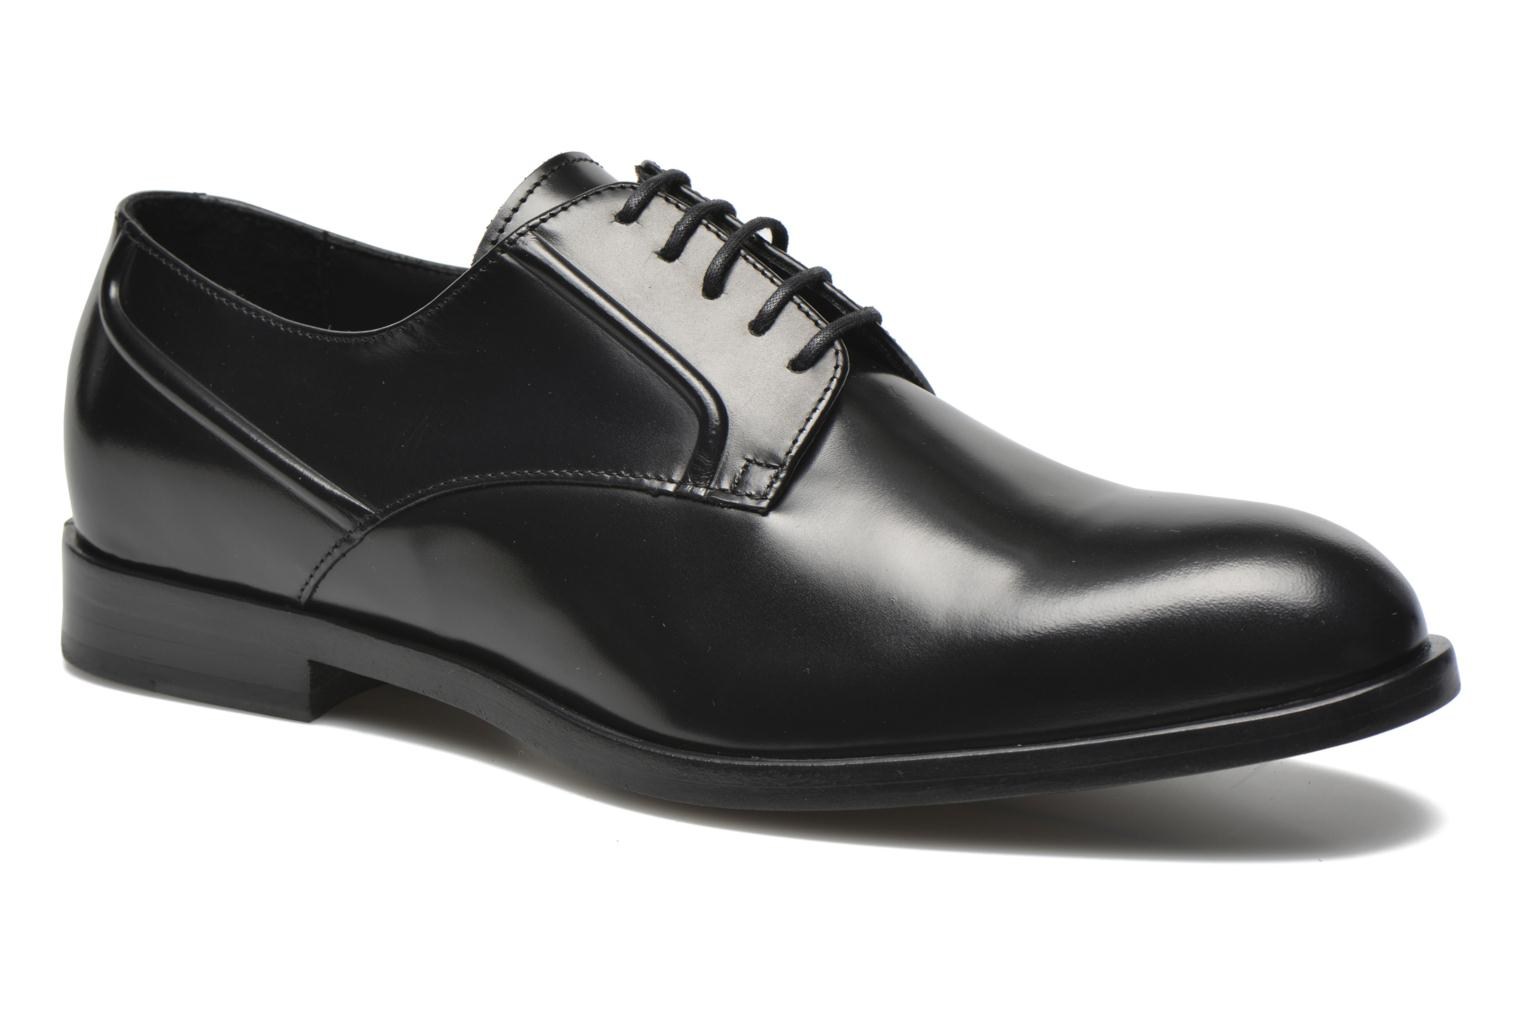 Archive 21 glazed calf black